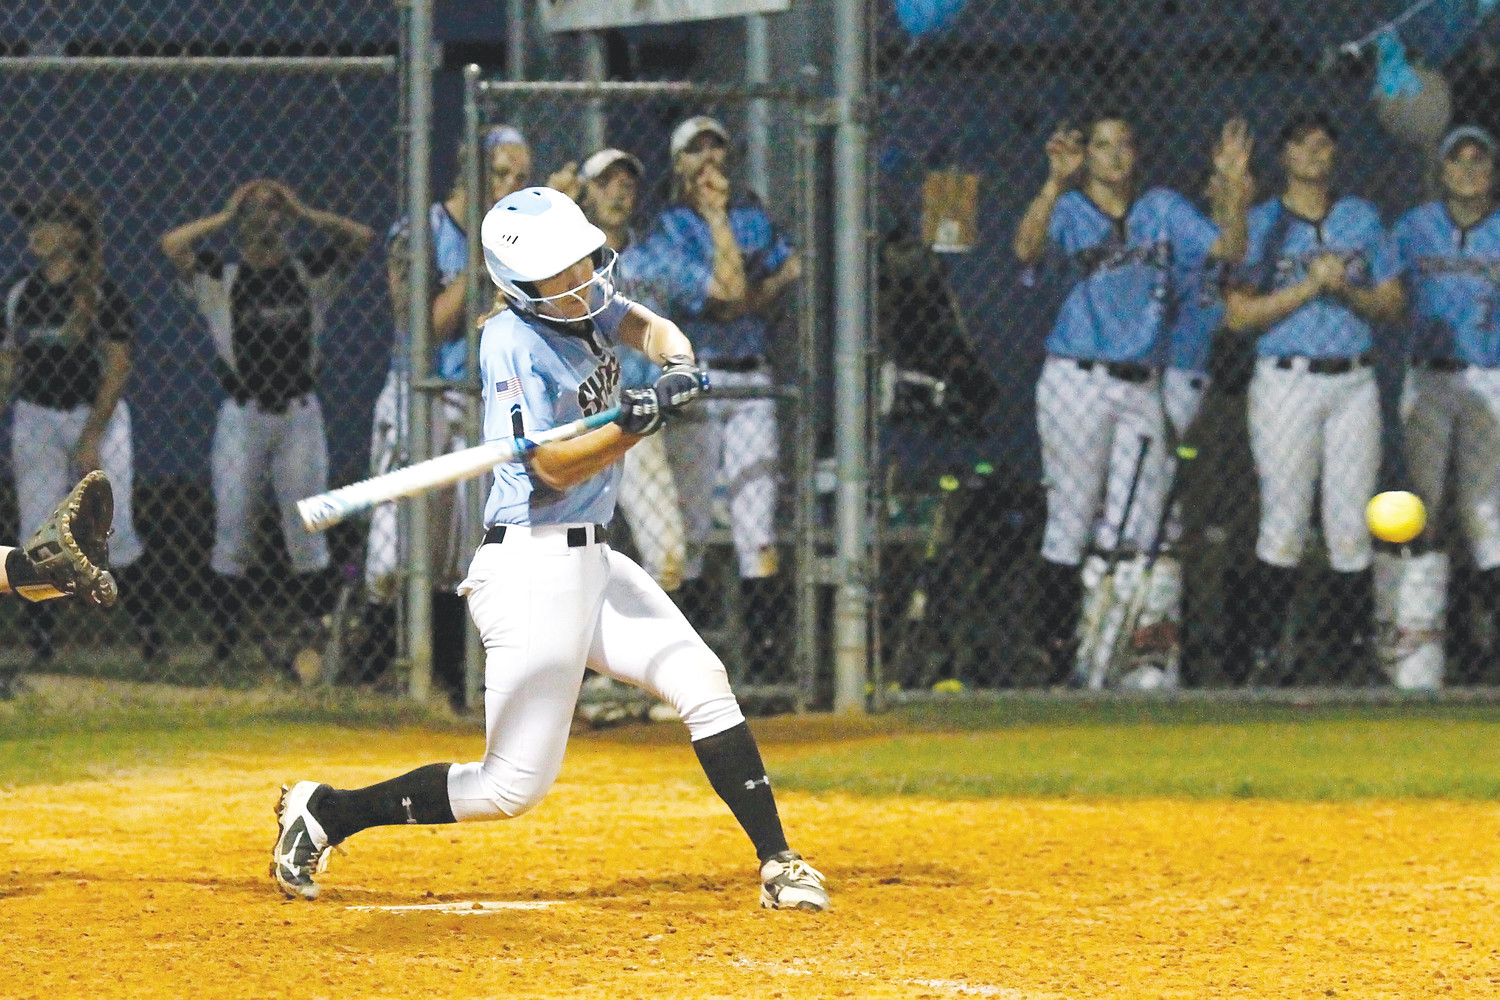 Audrey Matt delivers a walk-off hit for Ponte Vedra to drive home the game winner in the bottom of the seventh inning, resulting in a 5-4 win for the Sharks over Fletcher on Friday, March 2. Pitcher Michelle Holder, who earned the win, contributed offensively with a long home run in the fifth inning to tie the game 4-4. Cat Beaton collected two hits for the Sharks. Ponte Vedra celebrated senior night for Quinlan Richmond and Kiley Hennesey.